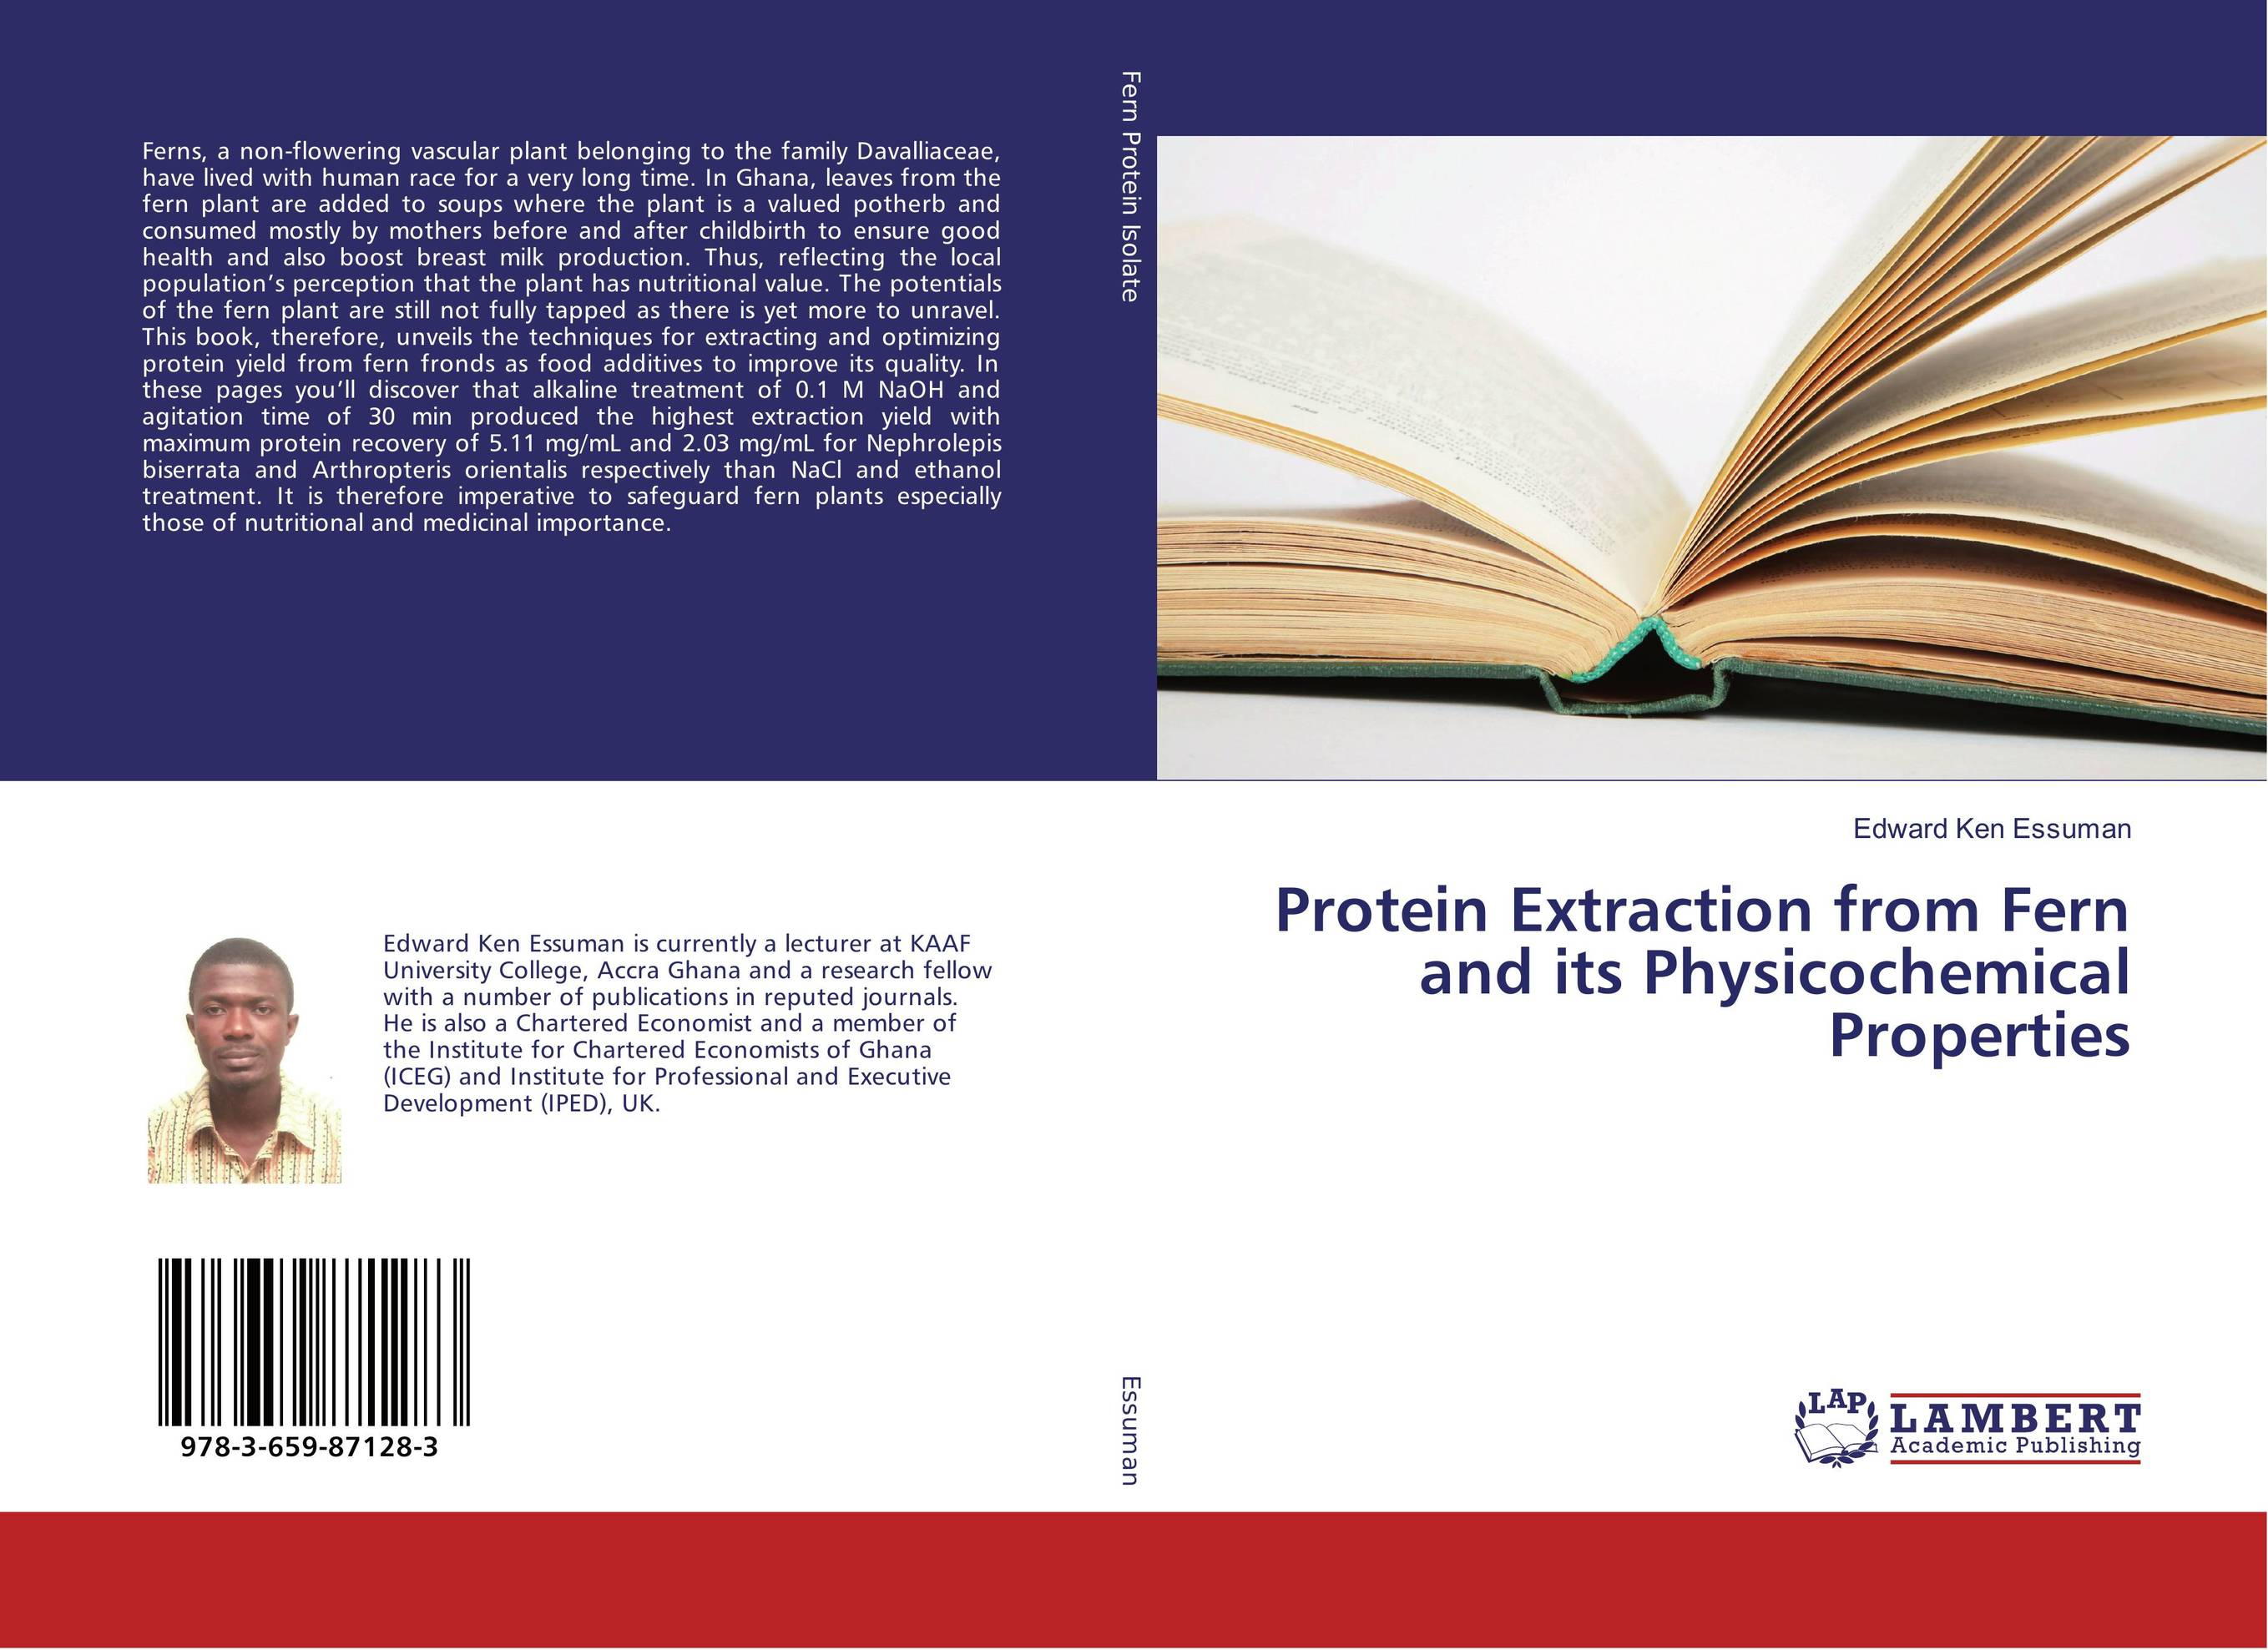 Protein Extraction from Fern and its Physicochemical Properties protein extraction from fern and its physicochemical properties